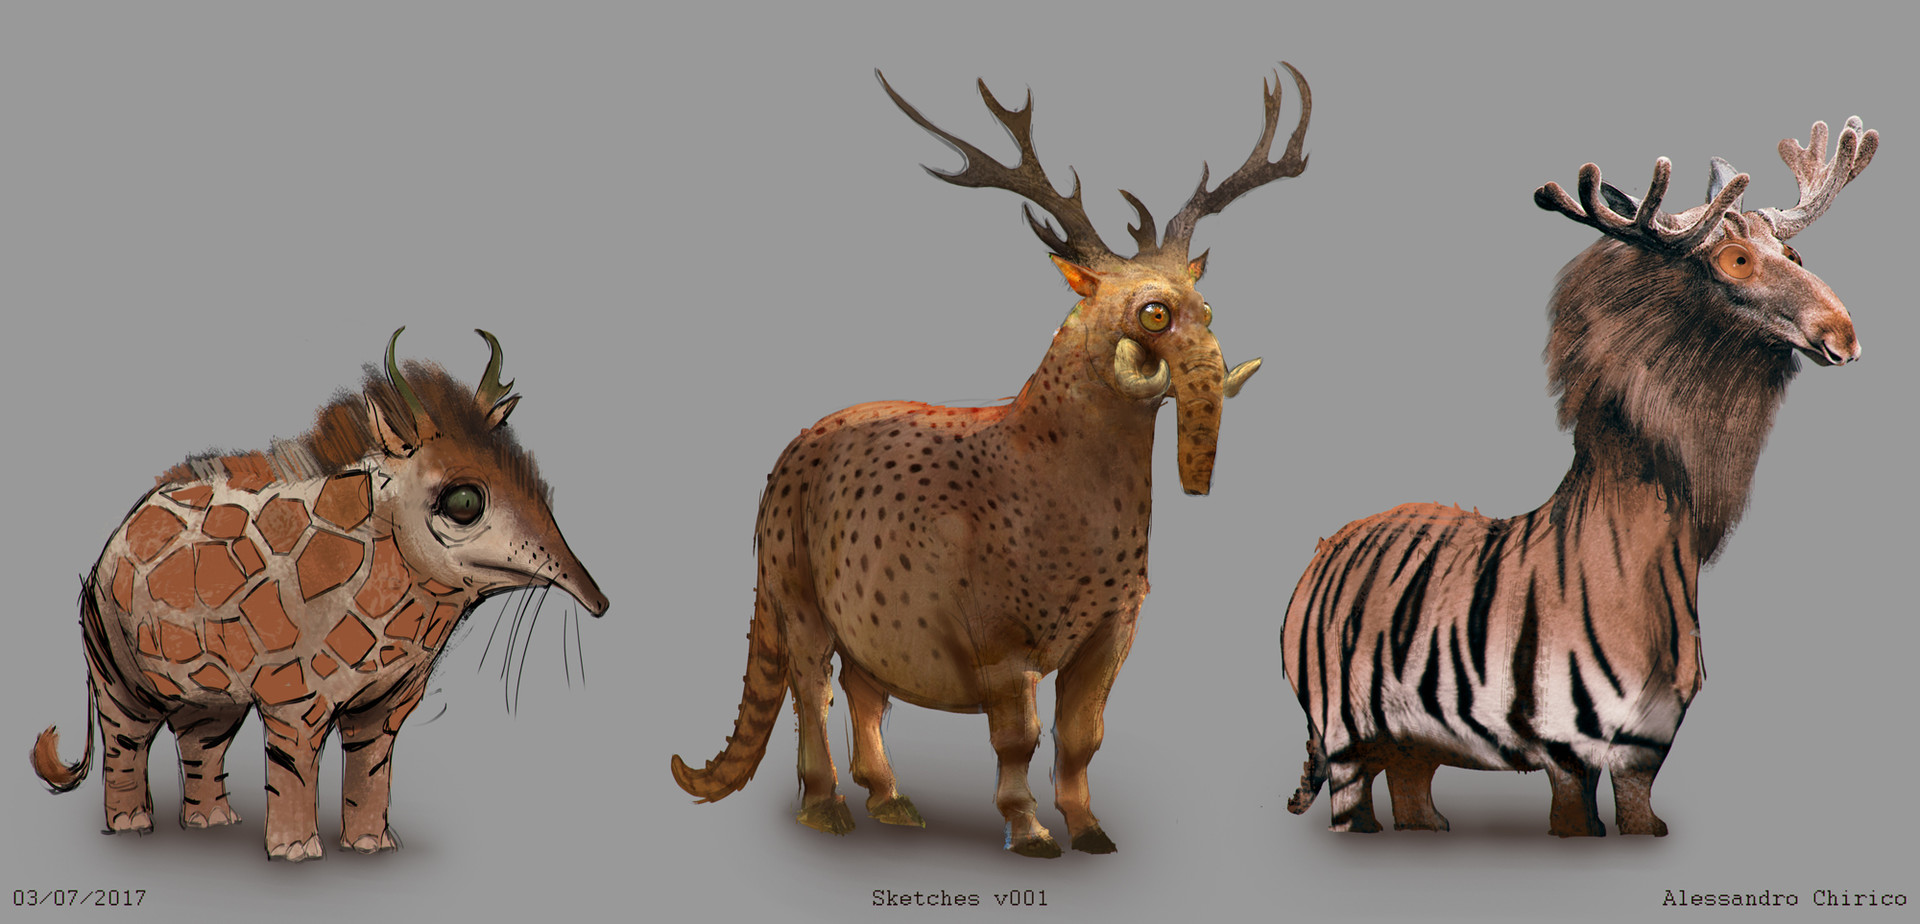 Alessandro chirico 20170703 v001 ac animal sketches